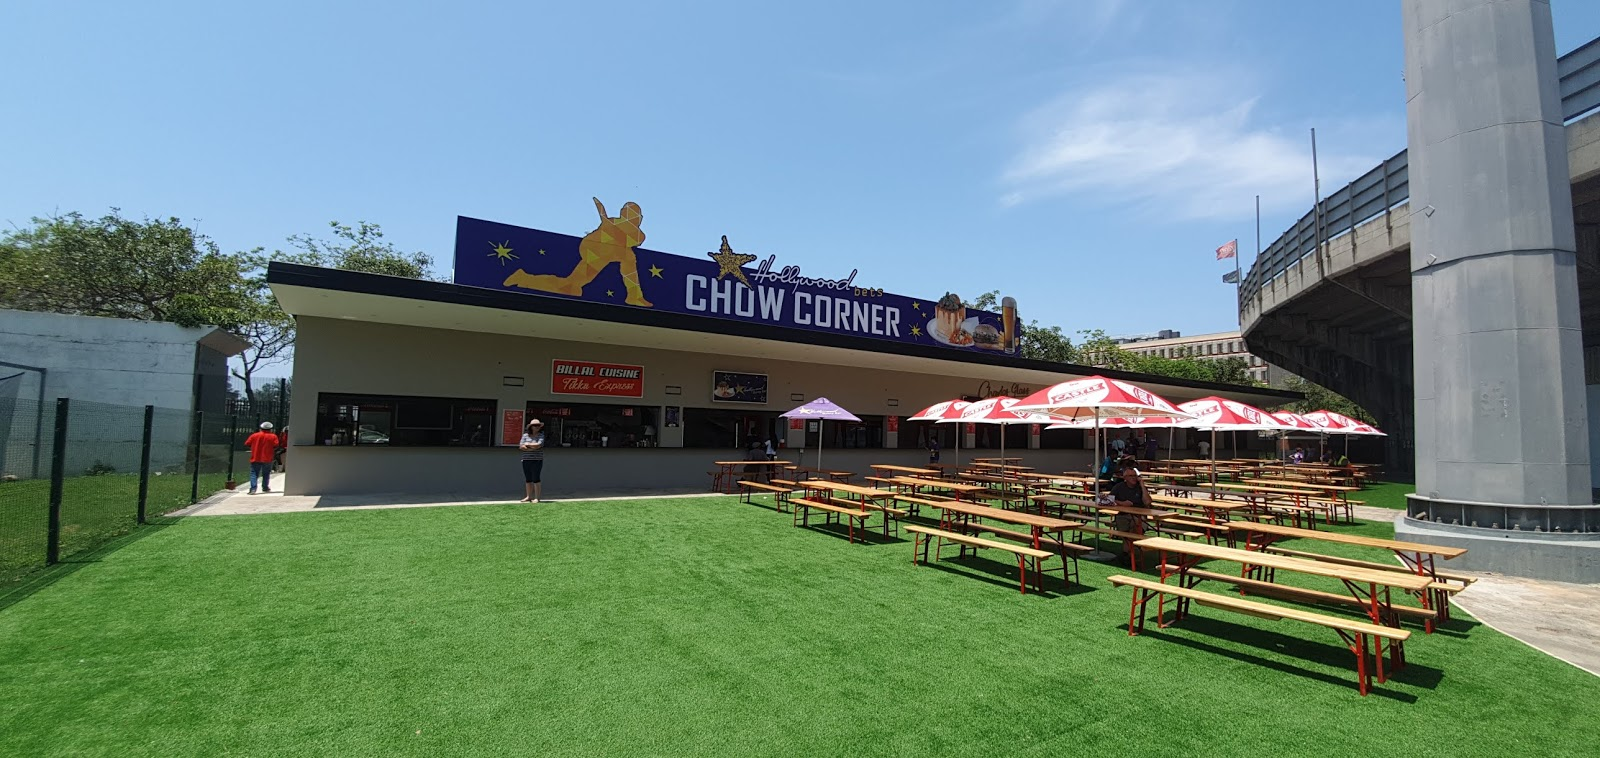 New Hollywoodbets Food Court - Chow Corner - at Hollywoodbets Kingsmead Cricket Stadium